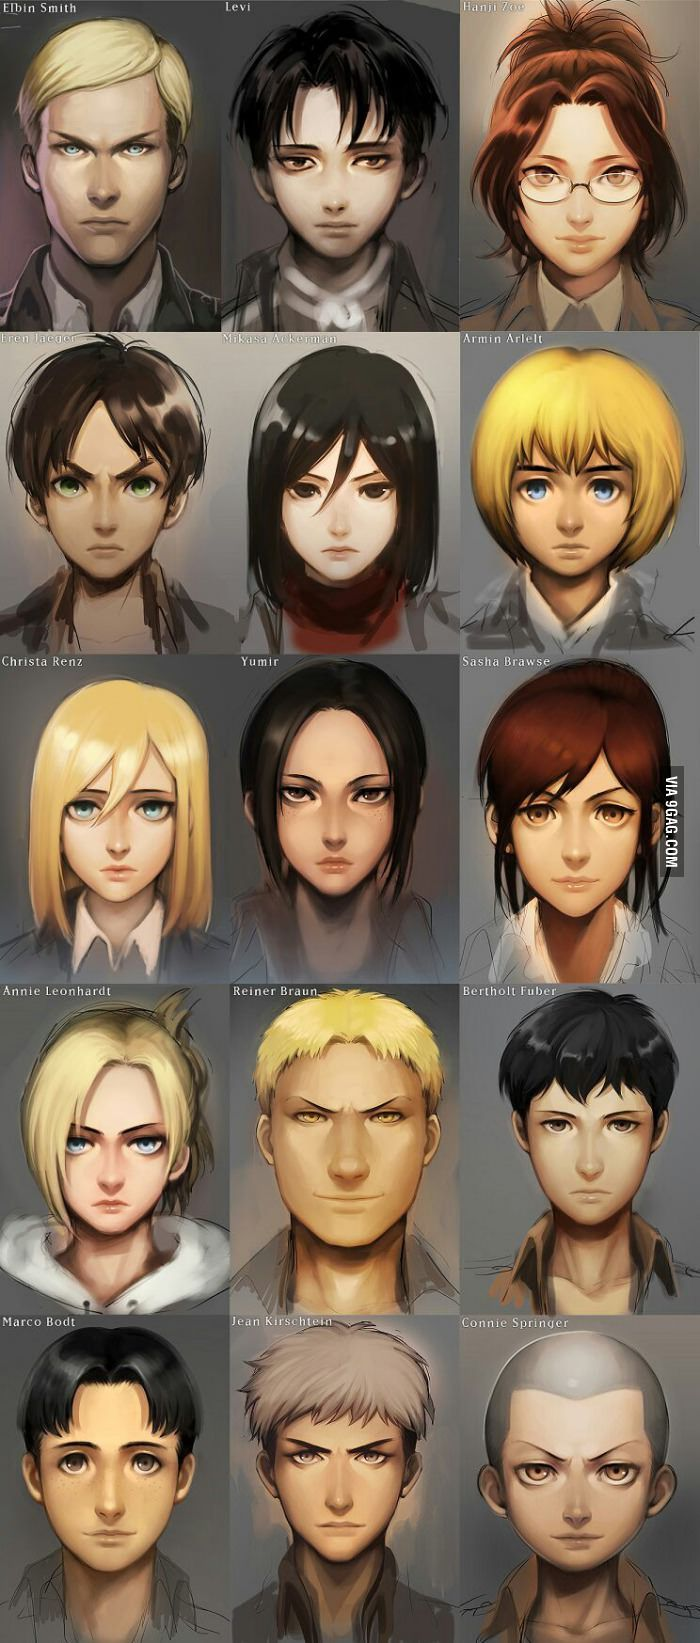 Very cool AOT portraits